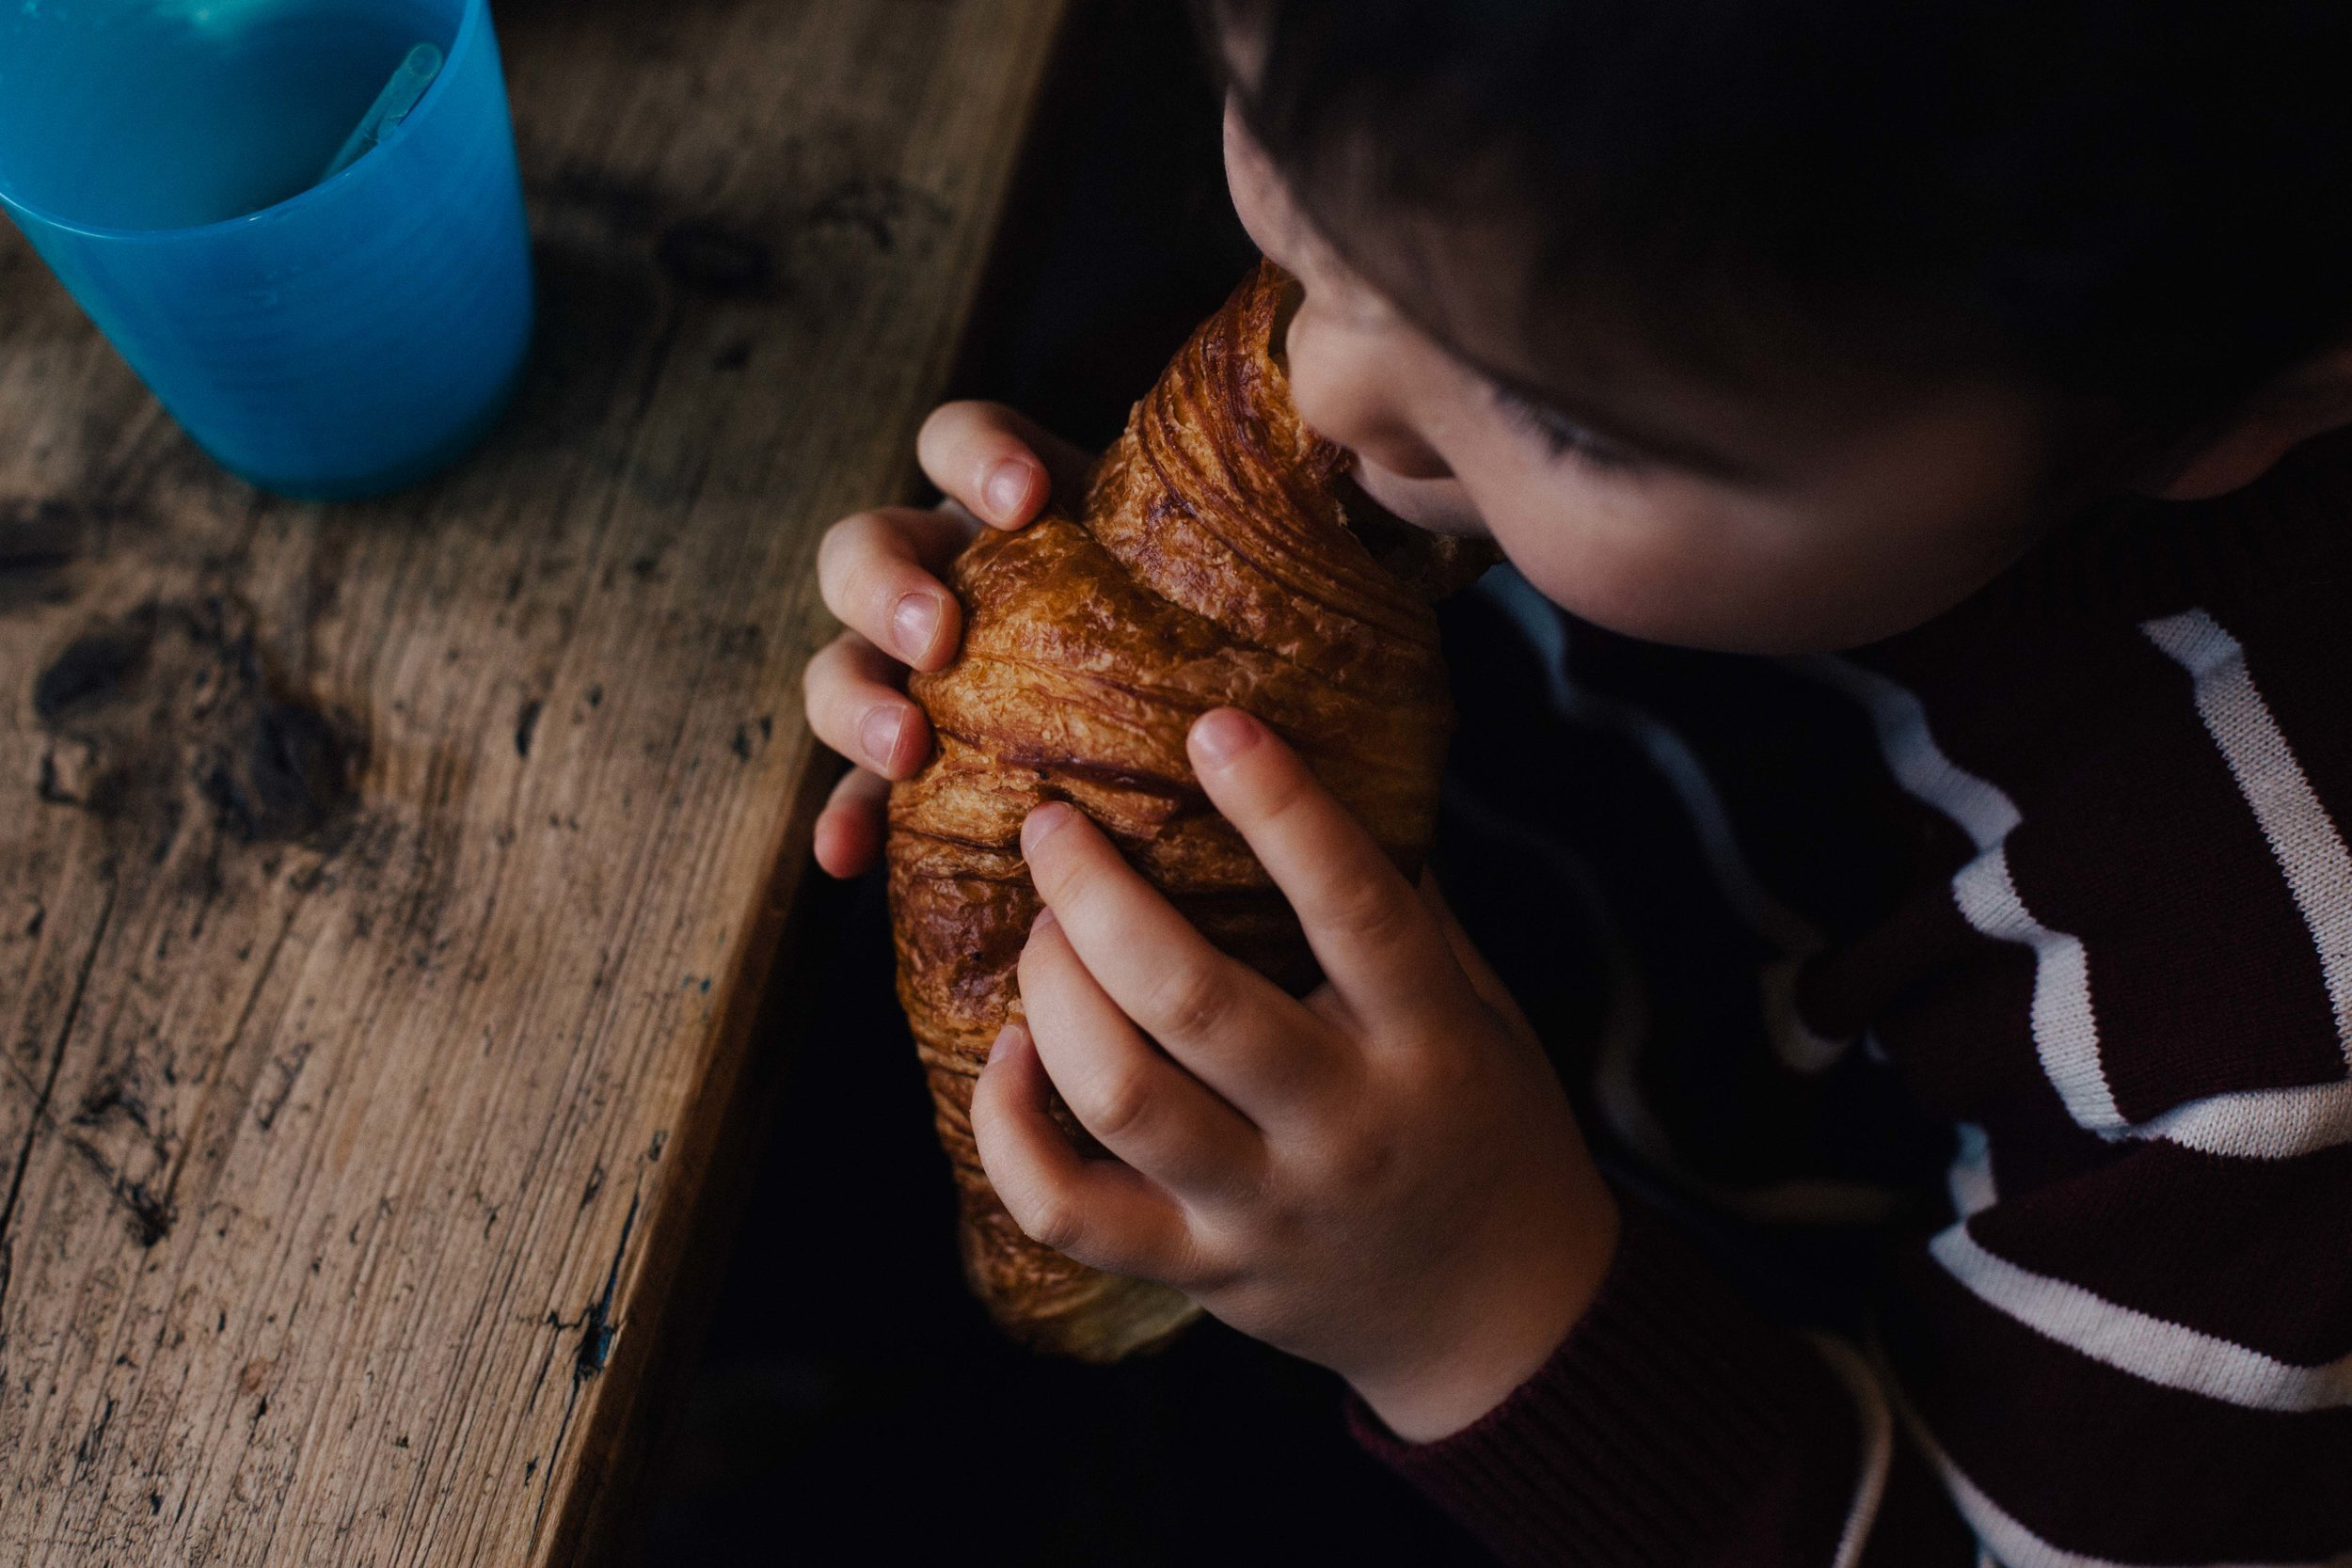 Boy eating a croissant